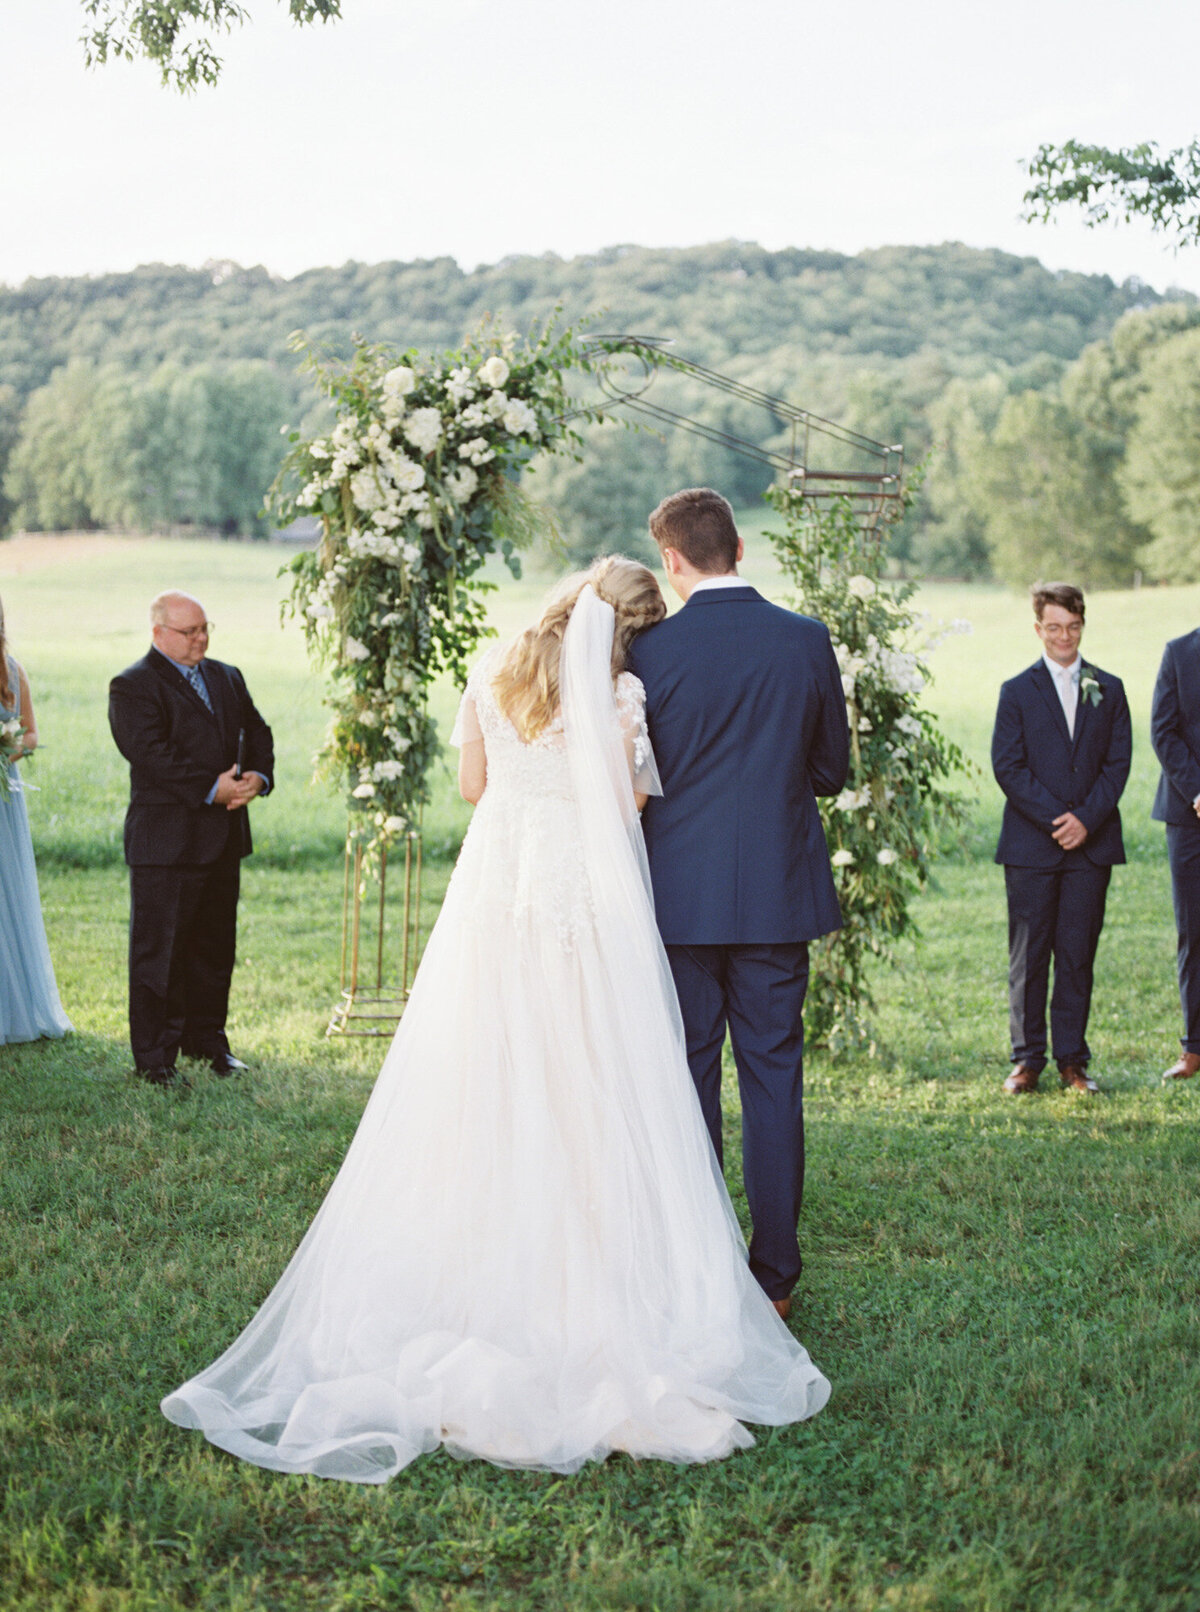 KelseyDawnPhotography-Alabama-Wedding-Photographer-Strawn-56